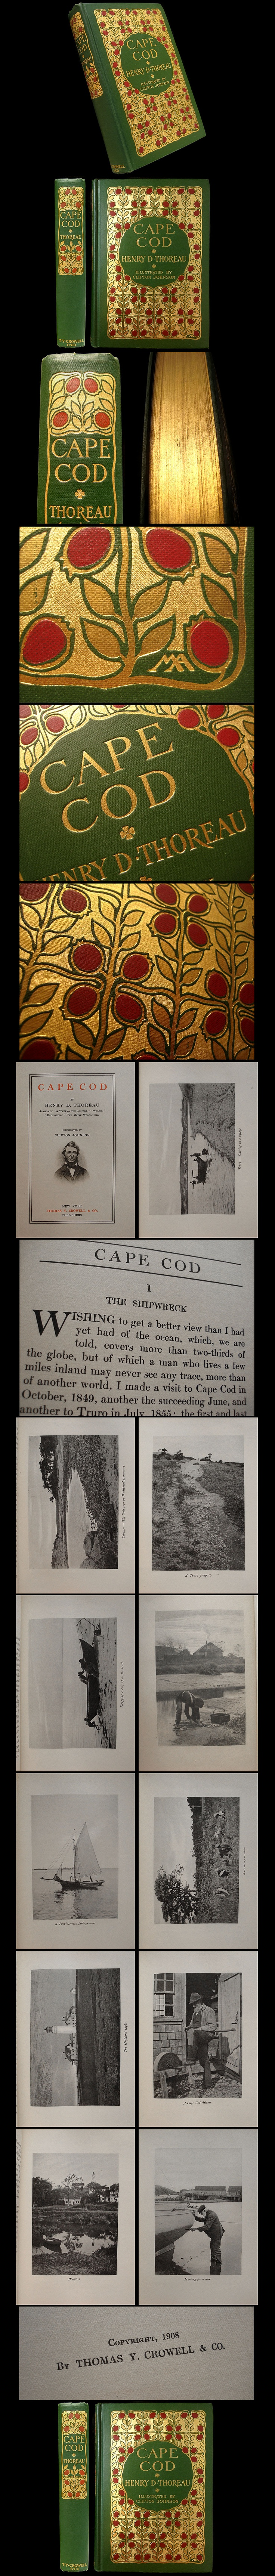 1908 Cape Cod by Henry David Thoreau - Margaret Armstrong Binding